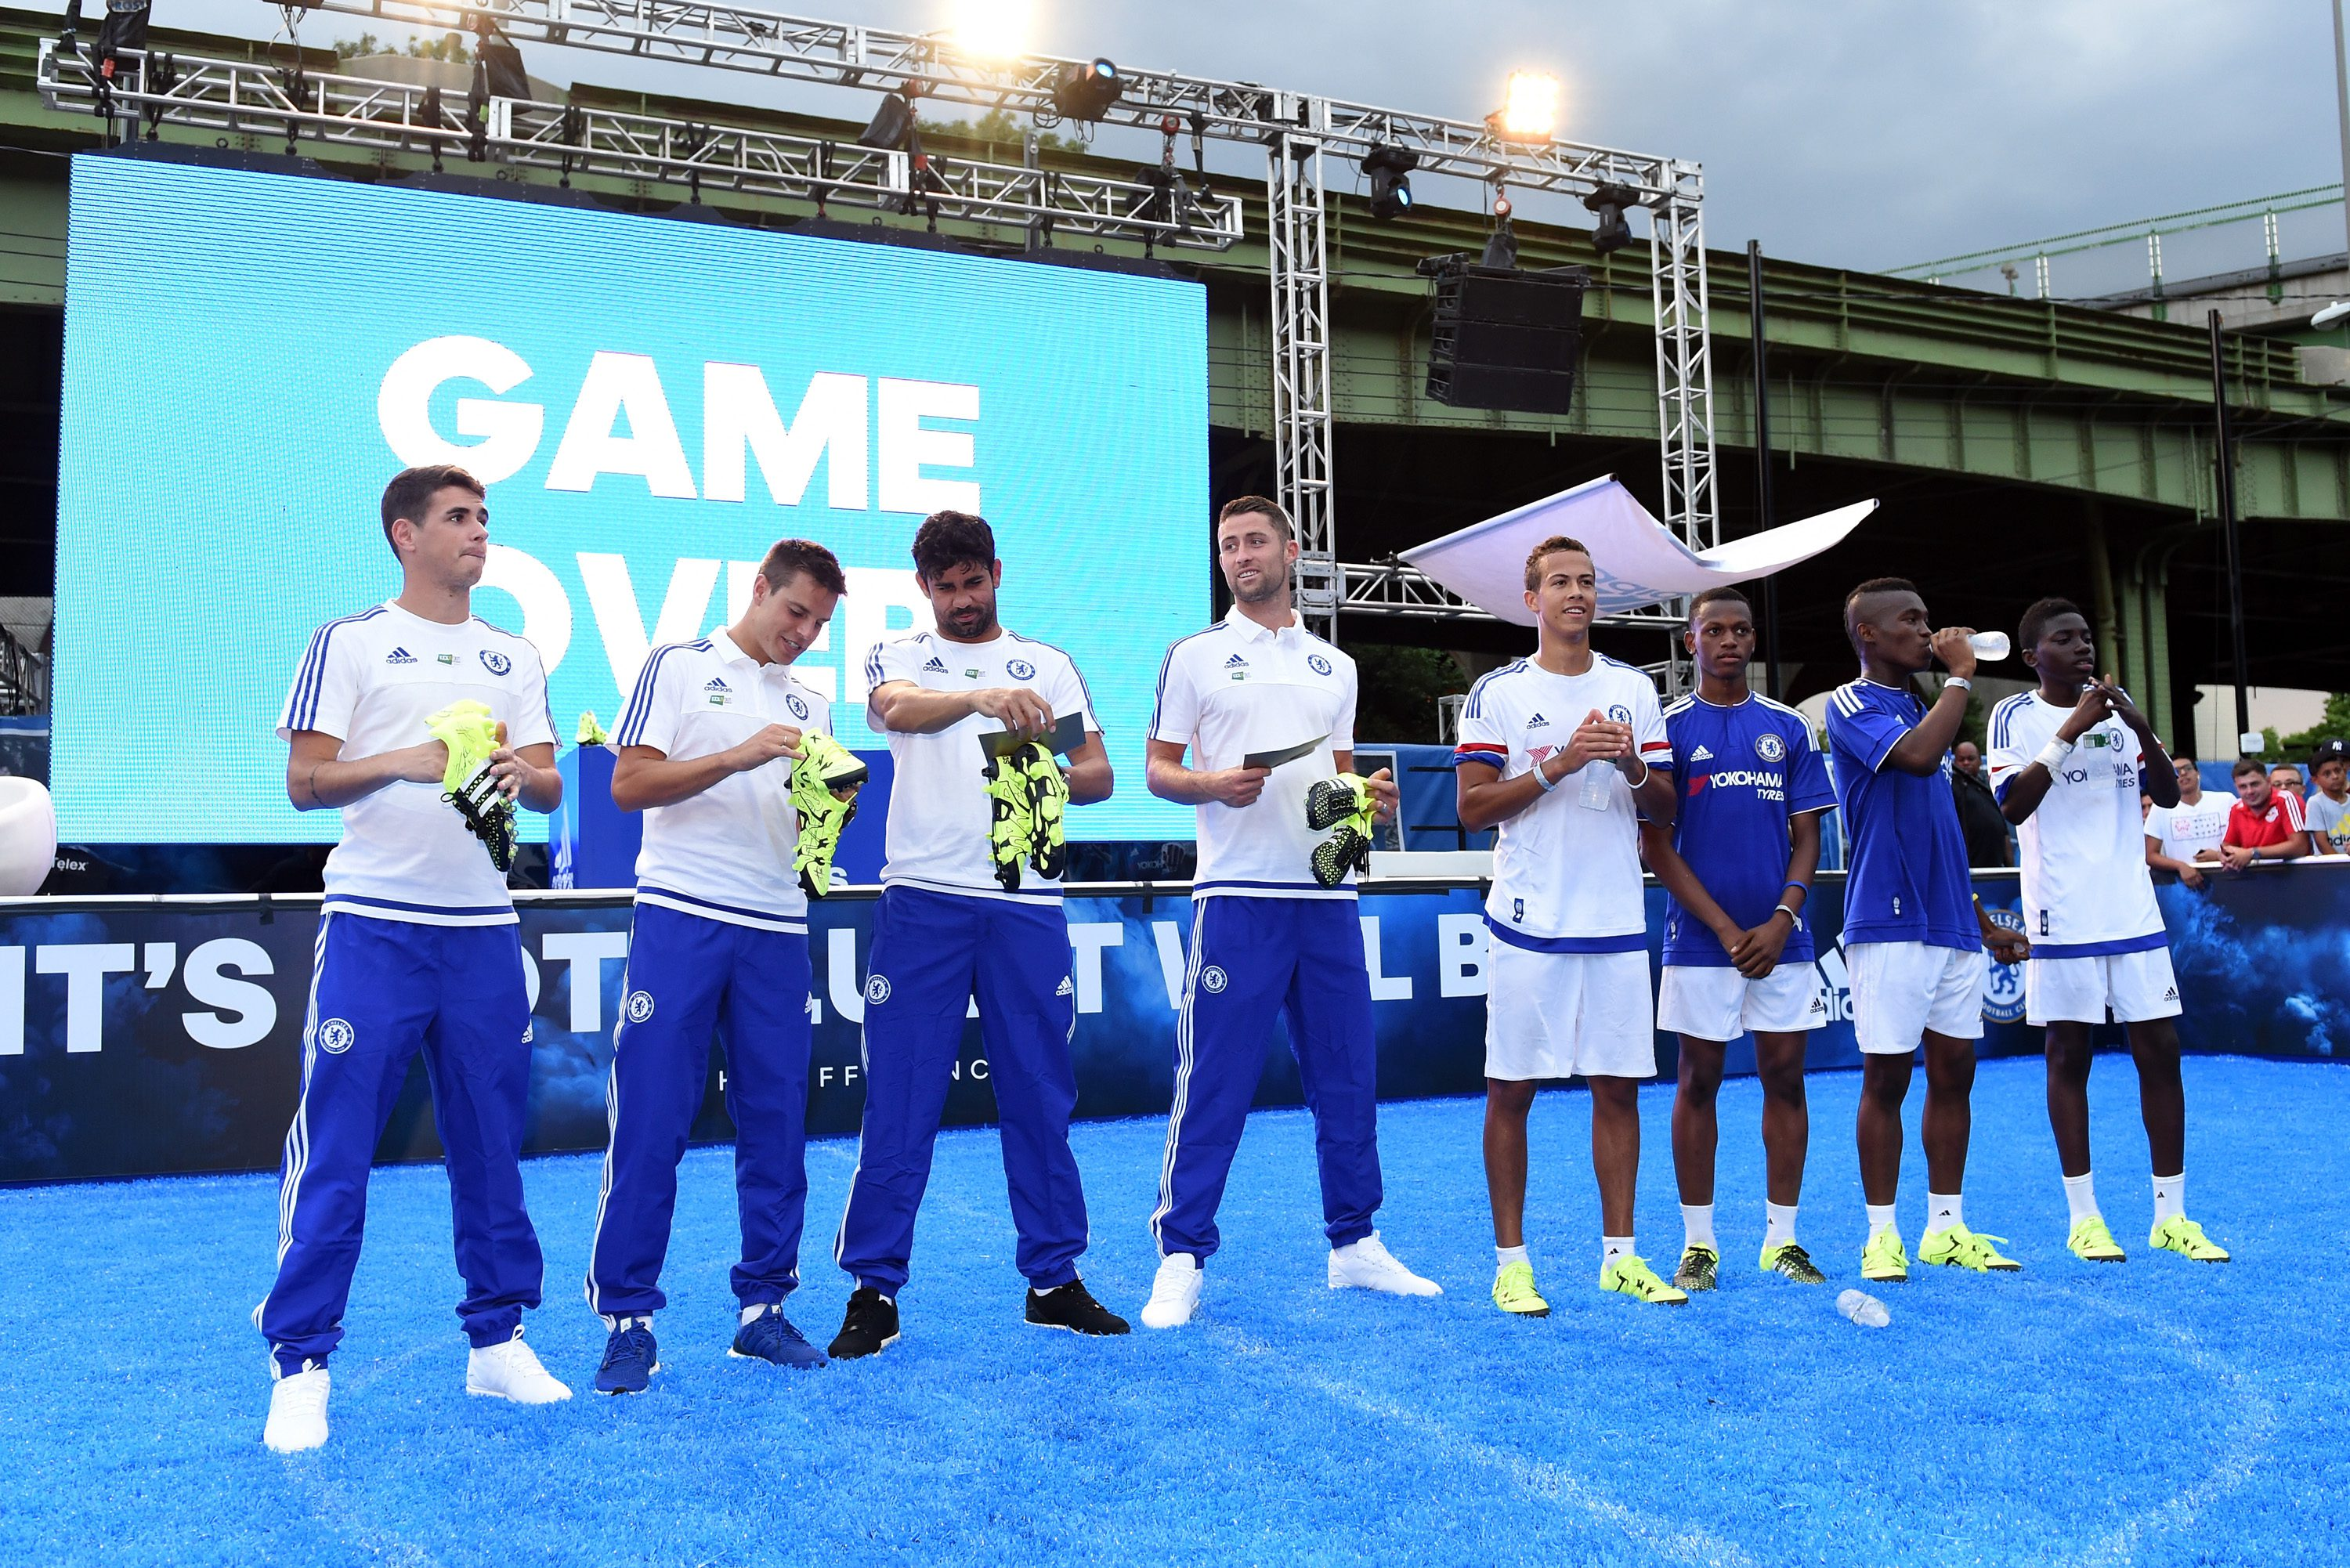 Chelsea's Gary Cahill, Oscar, Diego Costa, Cesar Azpilicueta during the Adidas Be The Difference Event on 21st July 2015 at the FC Harlem Training Ground in Harlem, New York, USA.